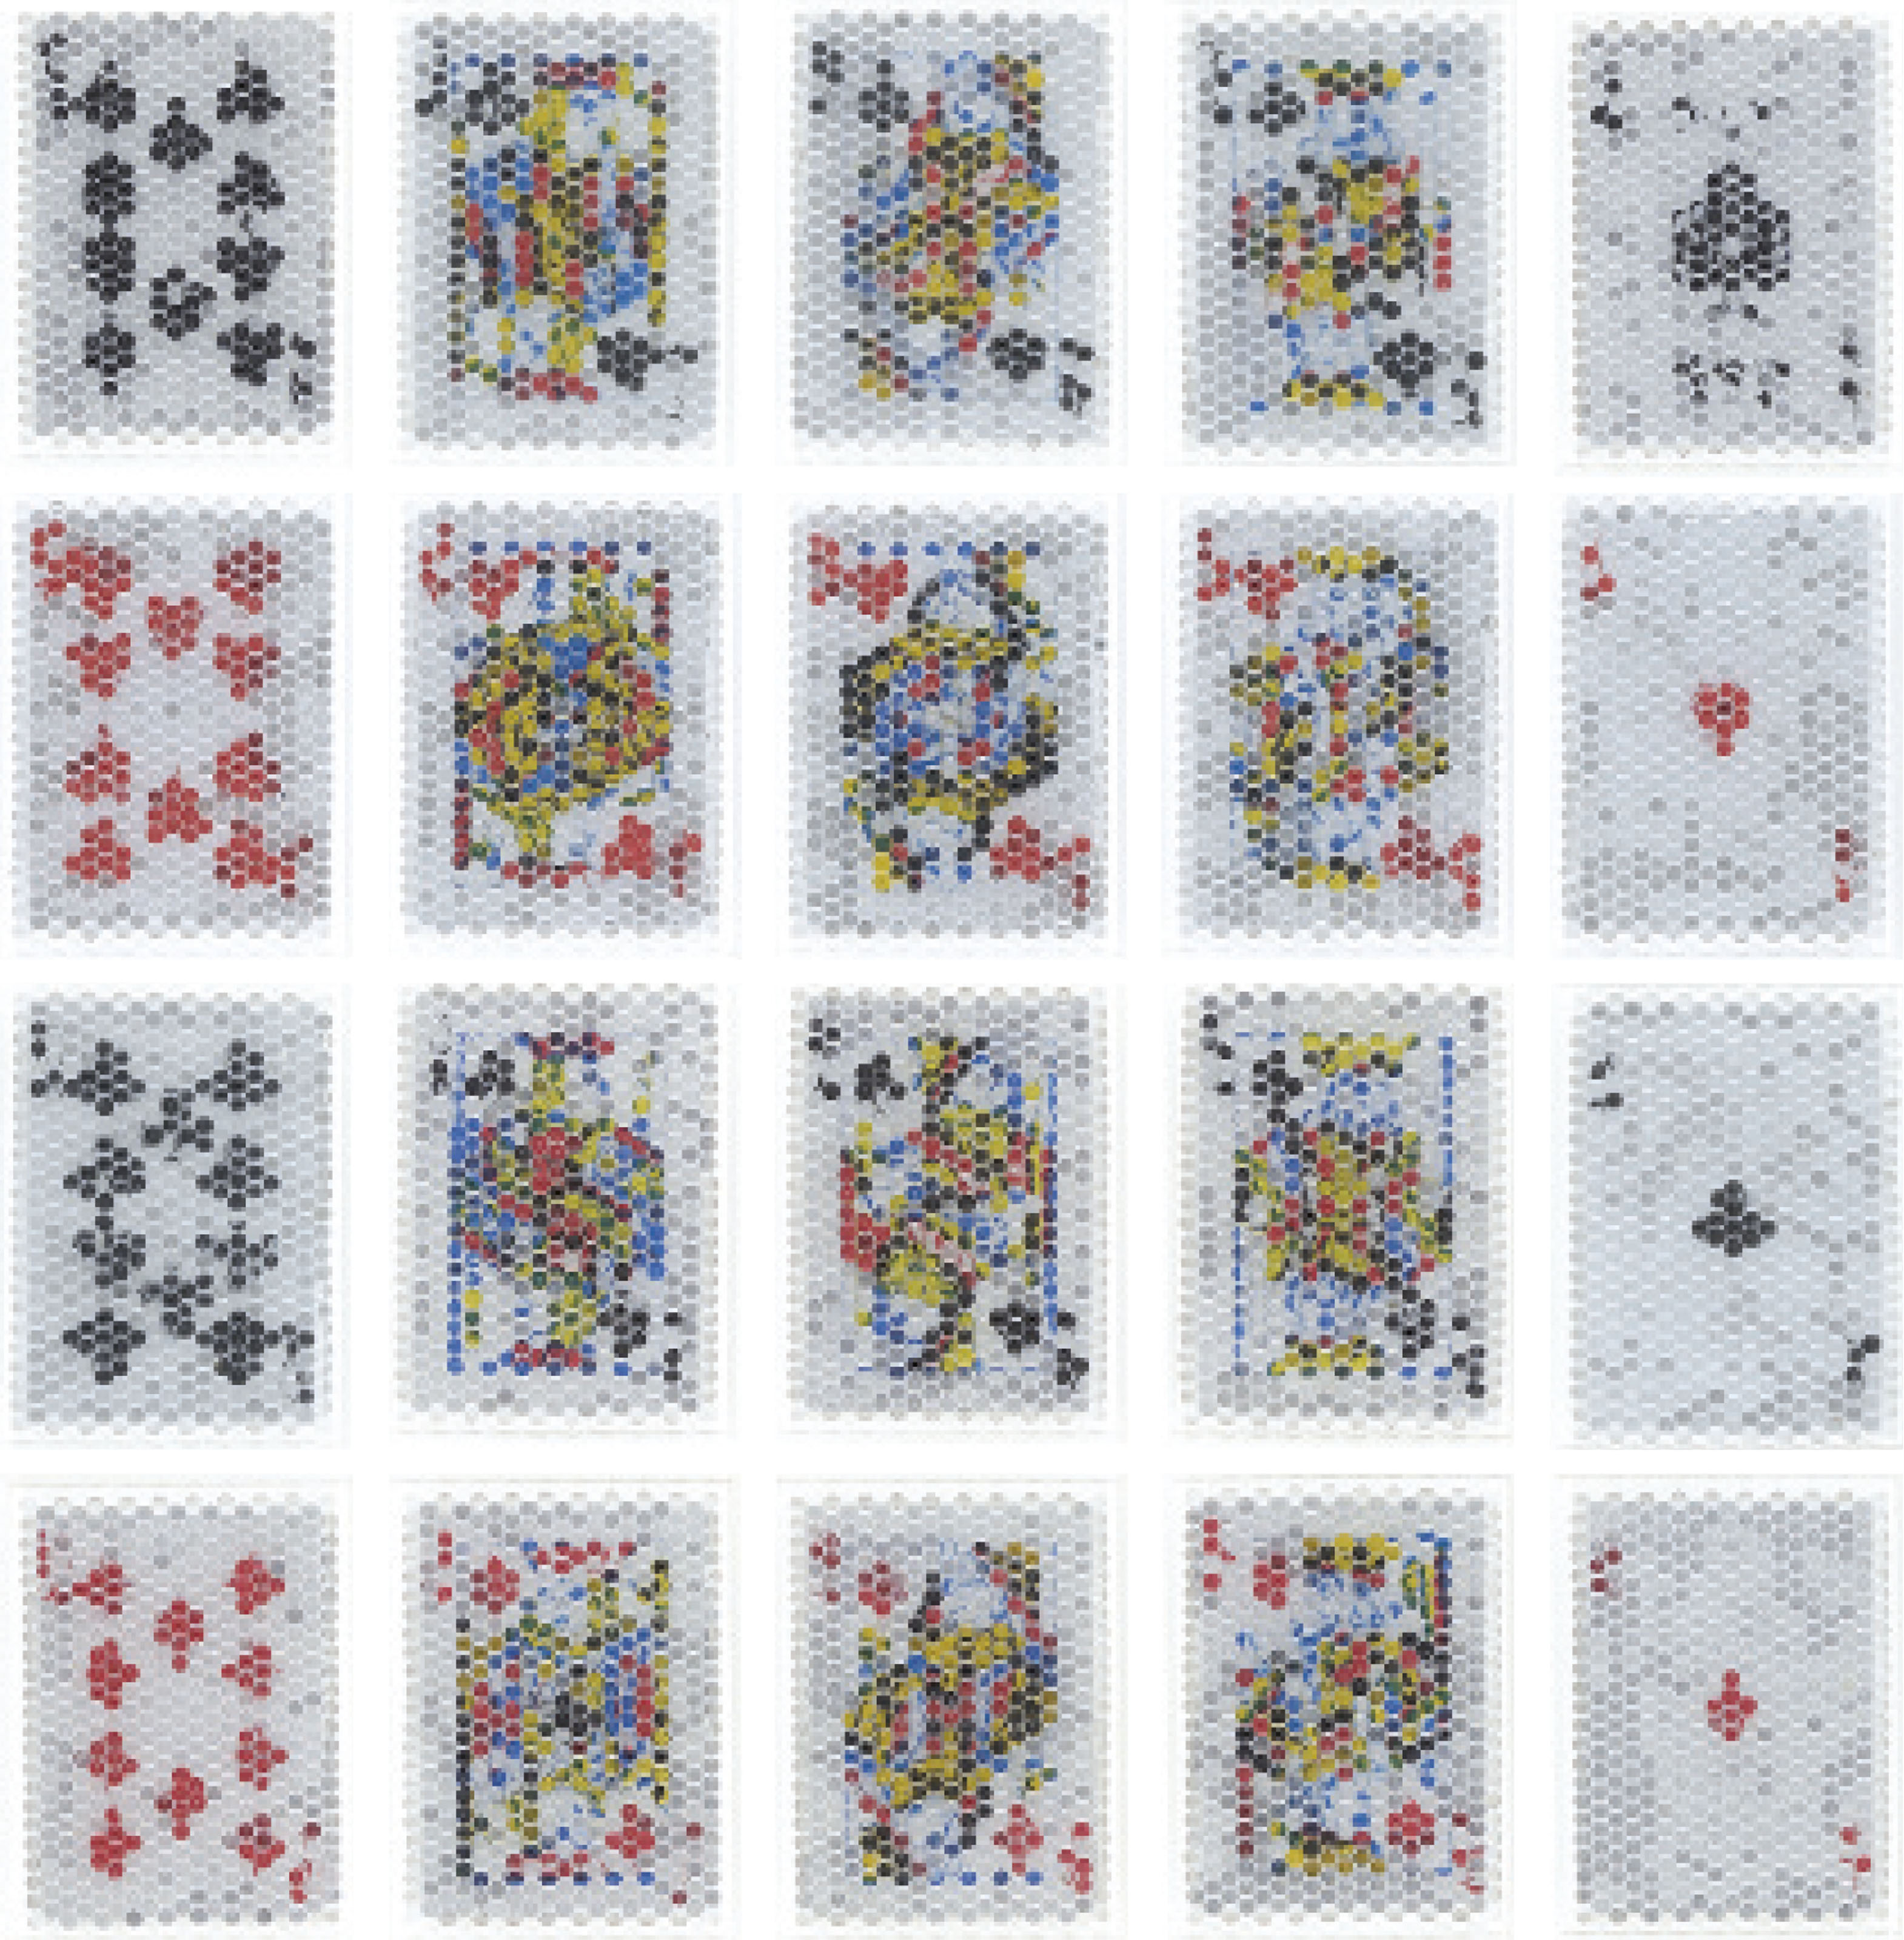 PixCell-Trump#4: (Royal-Straight-Flush-DiamondSpades); (Royal-Straight-Flush-Hearts); (Royal-Straight-Flush-Clubs); (Royal-Straight-Flush-Diamonds)